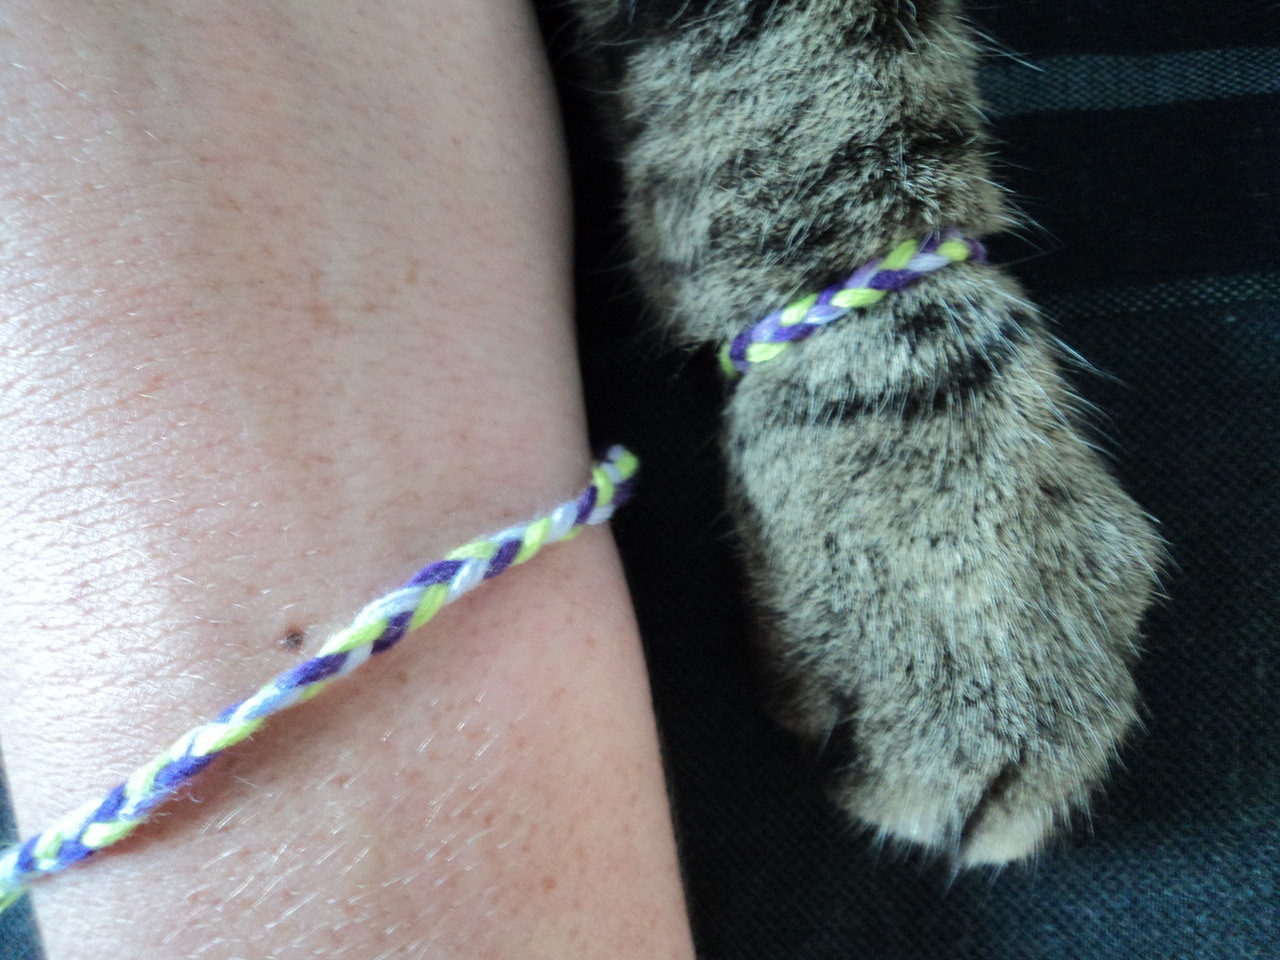 anclrew:  one time i made friendship bracelets for my cat and i